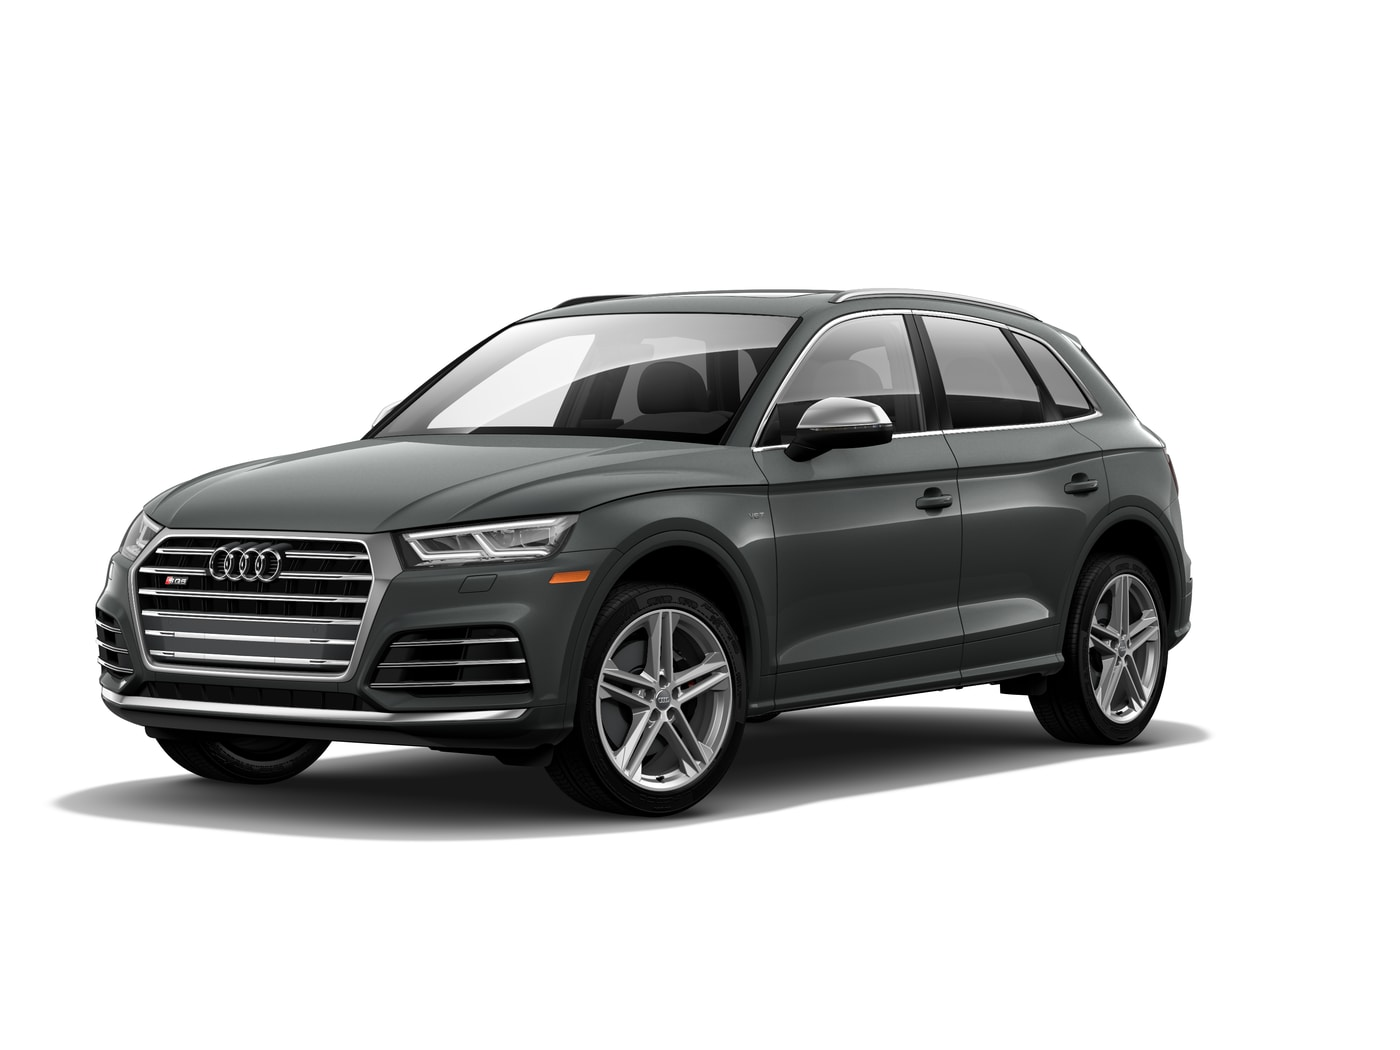 2018 Audi Sq5 3 0t Premium Plus For Sale Westmont Il